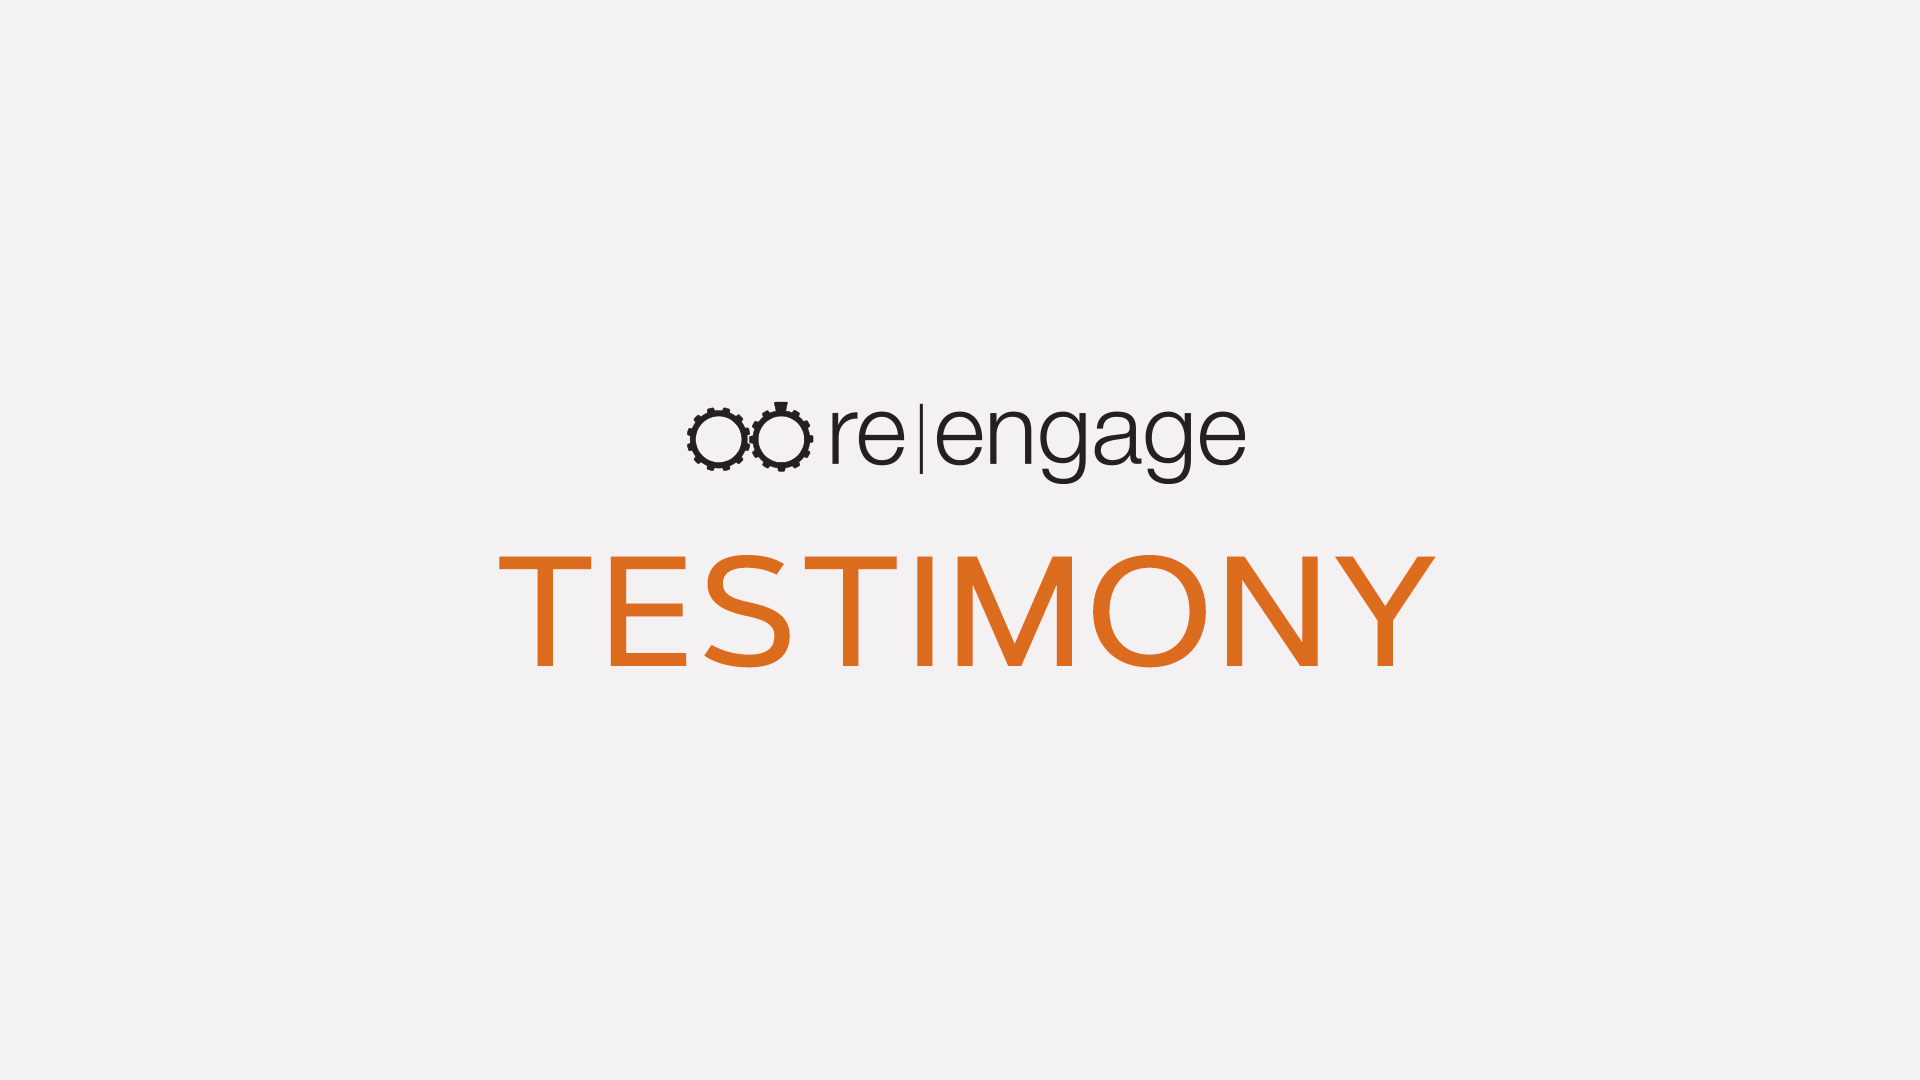 Chris and Charece Robbins - re|engage Testimony